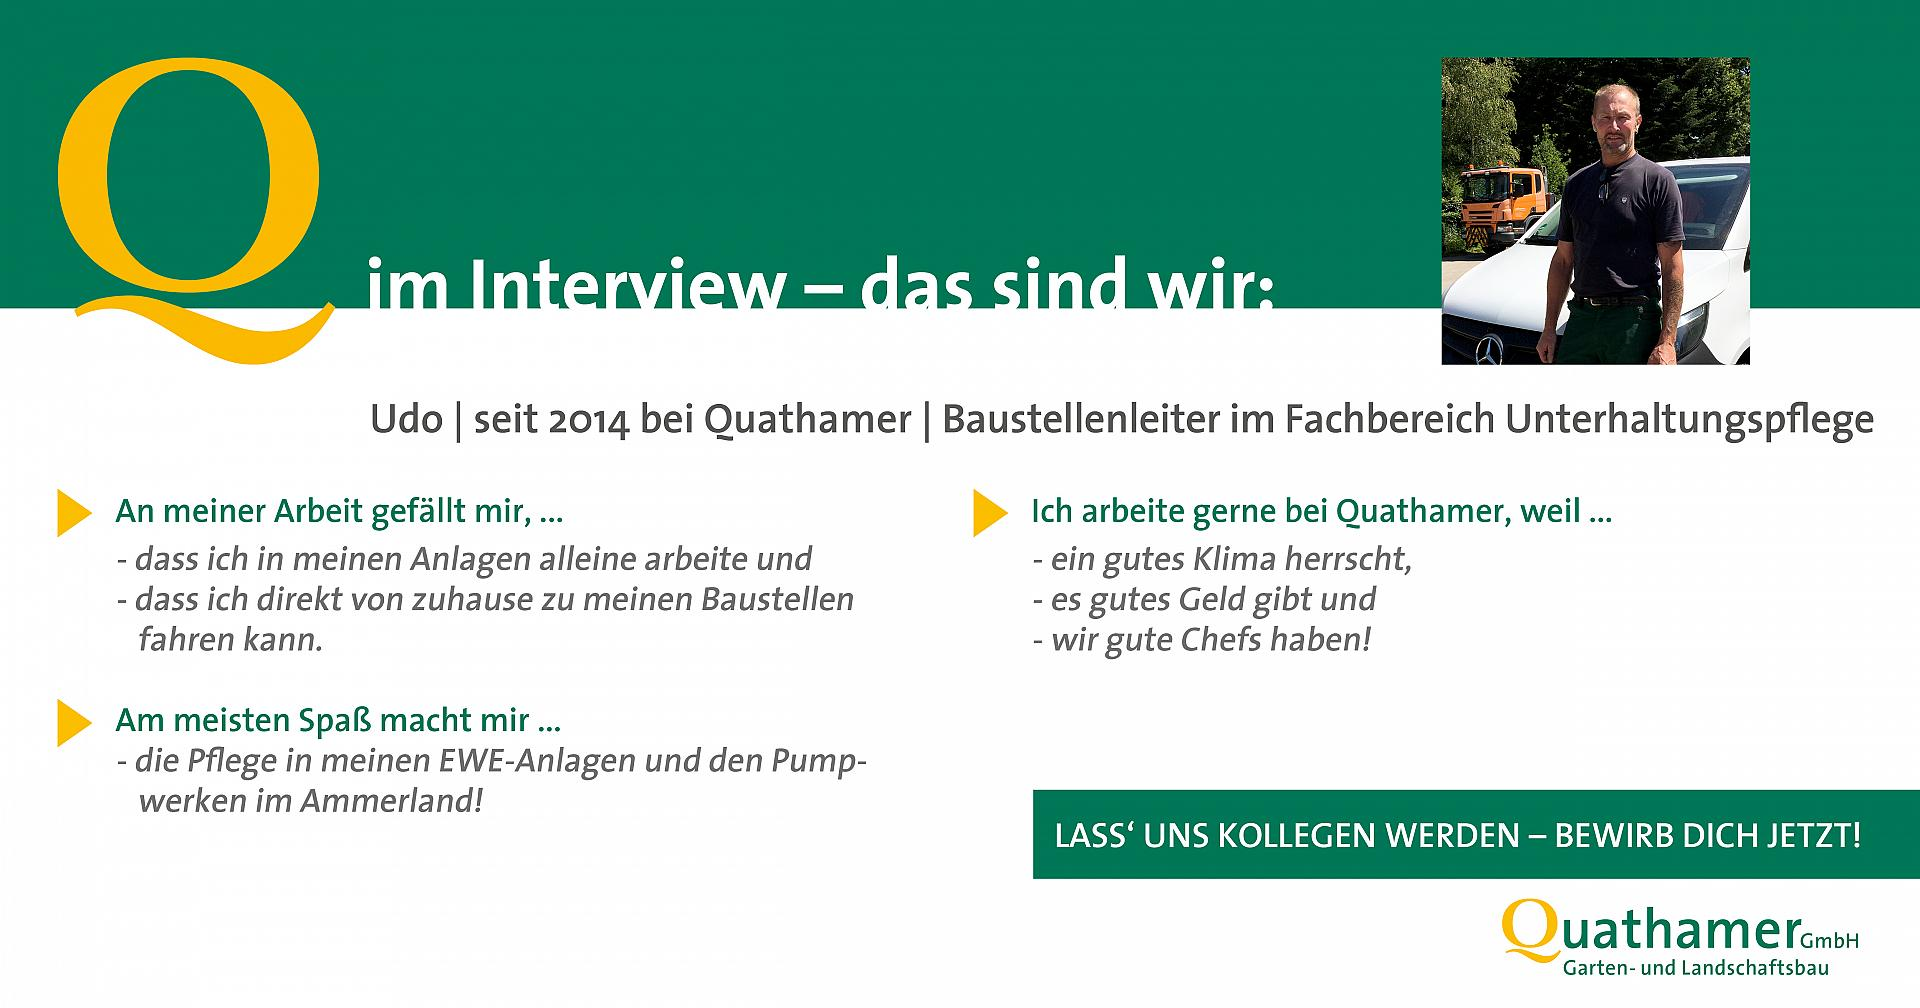 Interview mit Udo